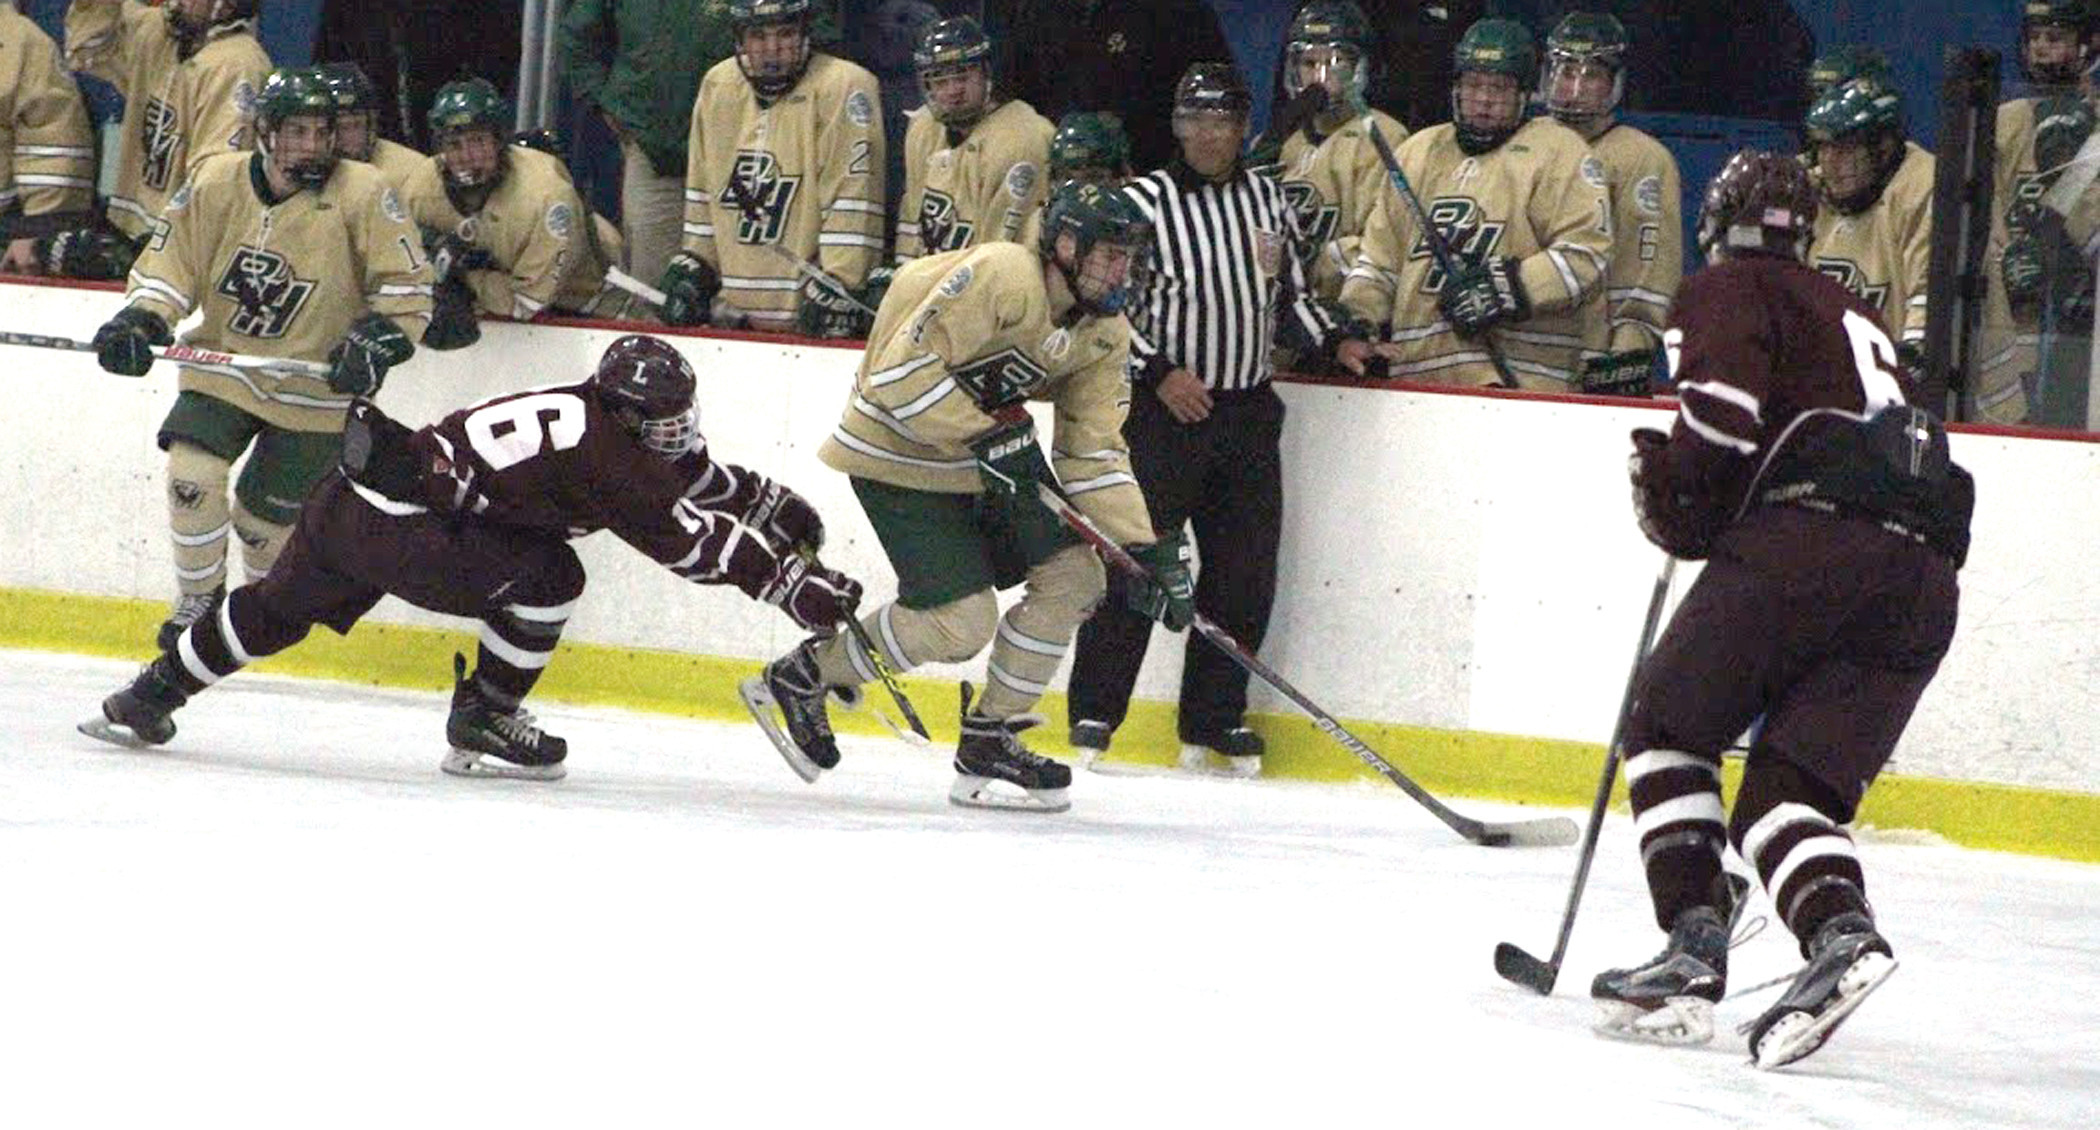 AGAINST THE BOARDS: Michael DiMascolo (center) works the puck up the ice for Hendricken.